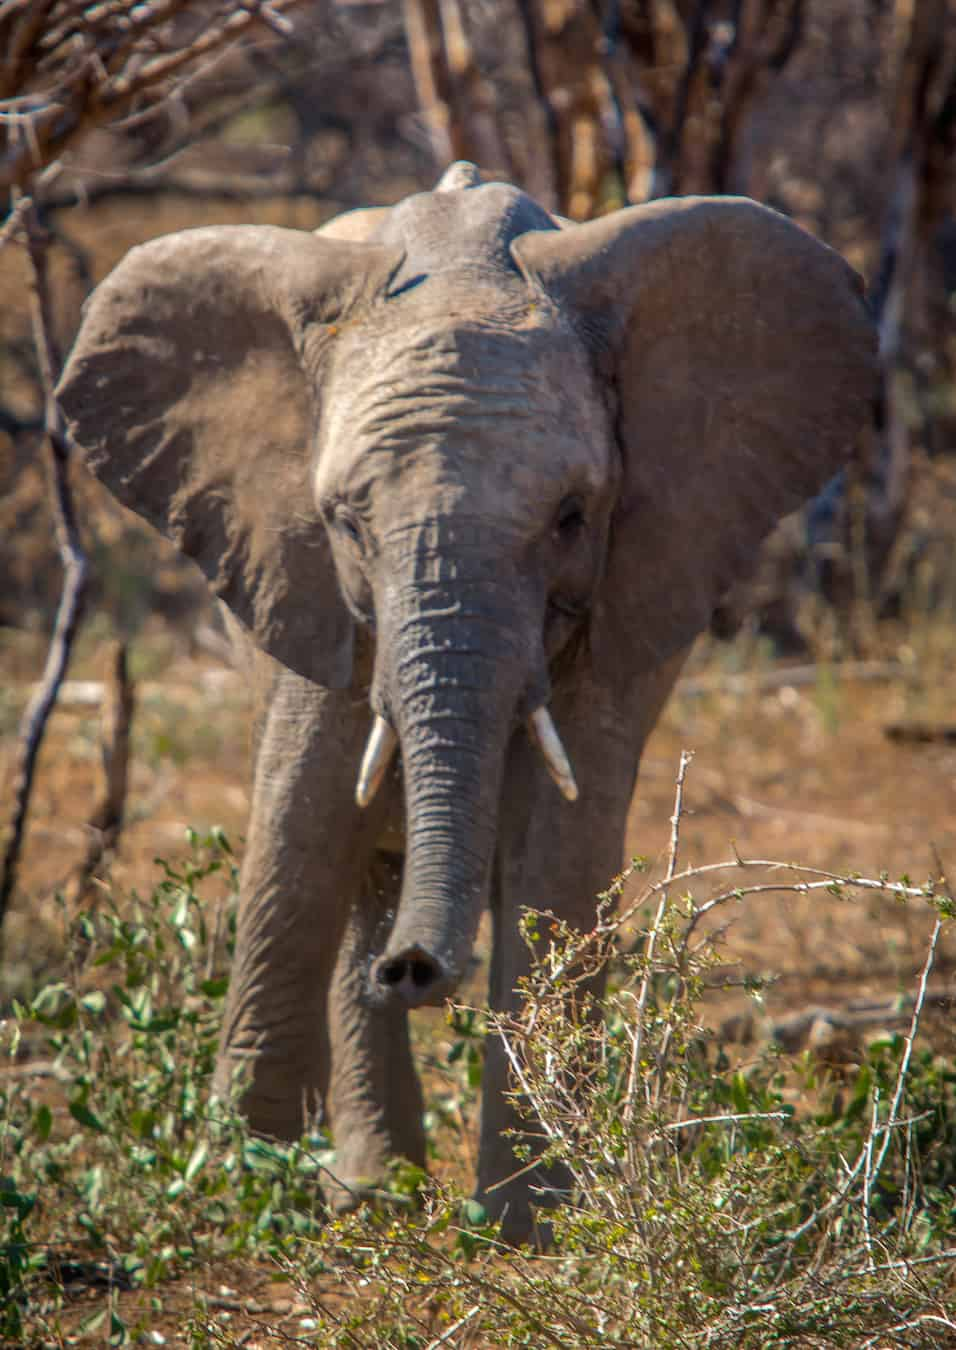 Baby Elephant in Kruger National Park